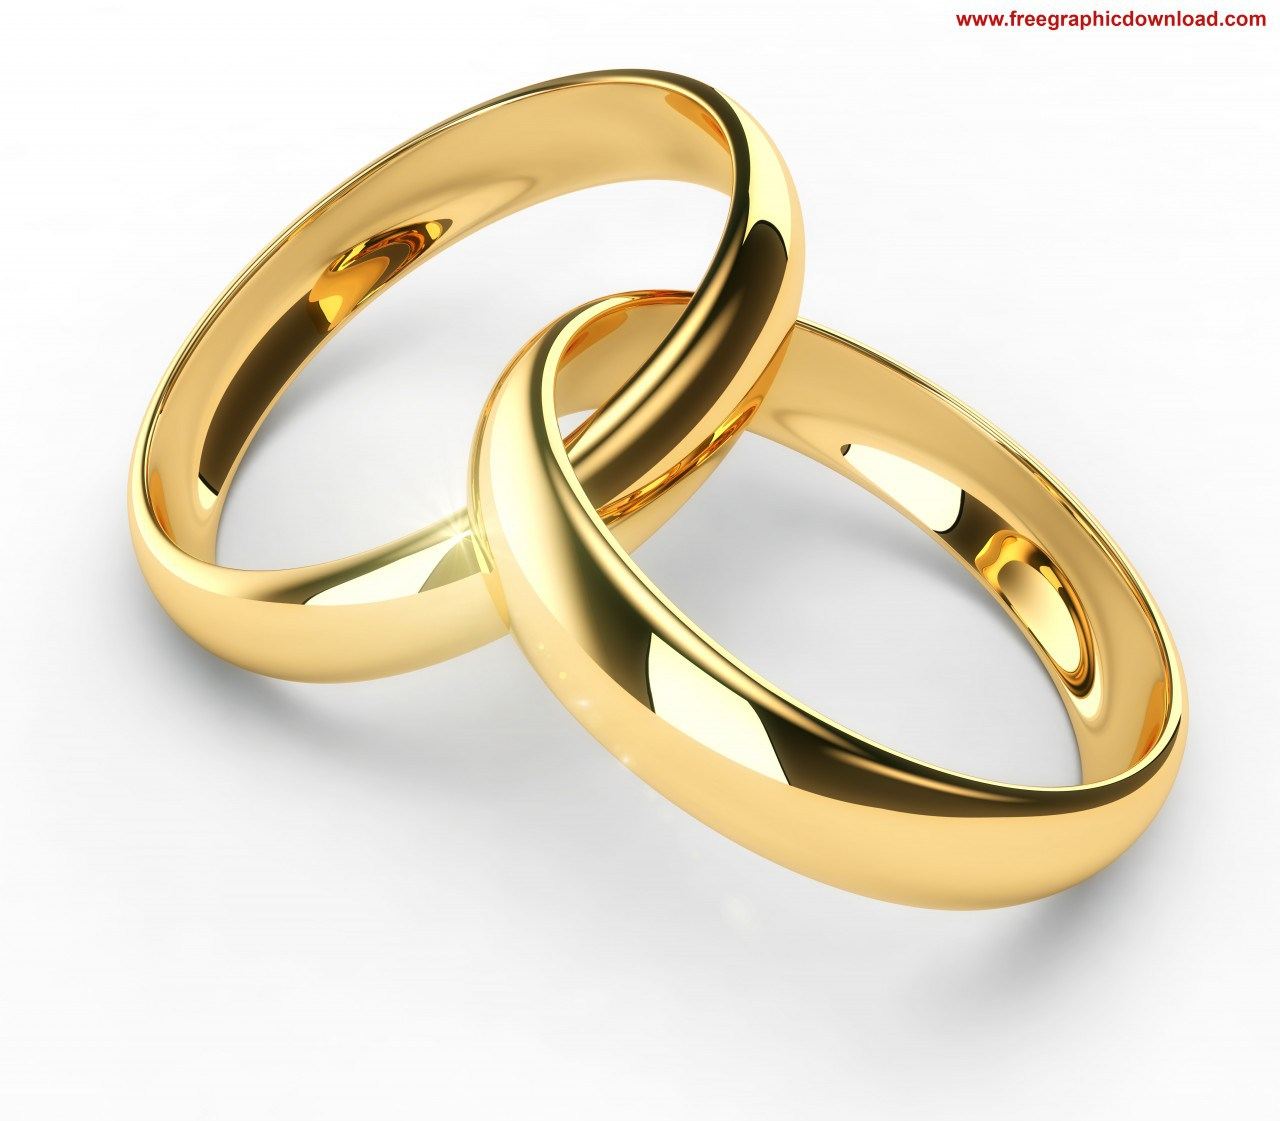 Wedding Rings Clip Art Group (+), HD Clipart.